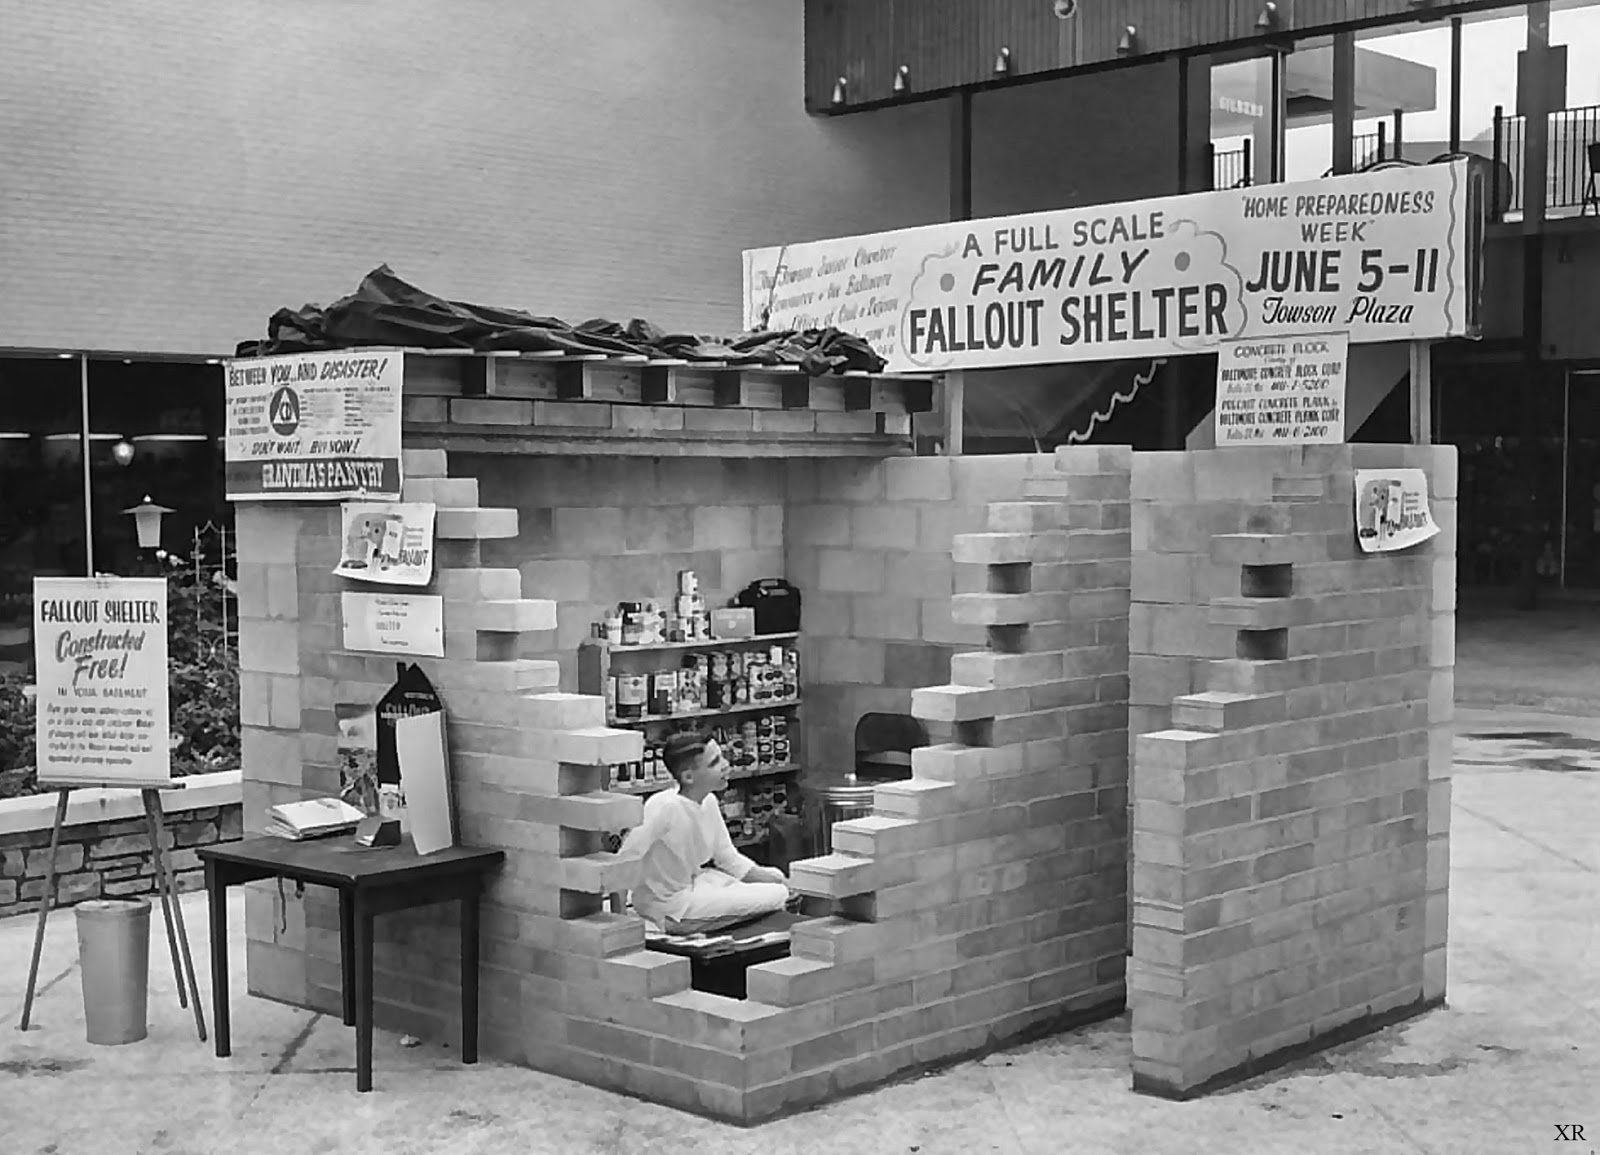 A 1950s nuclear shelter.